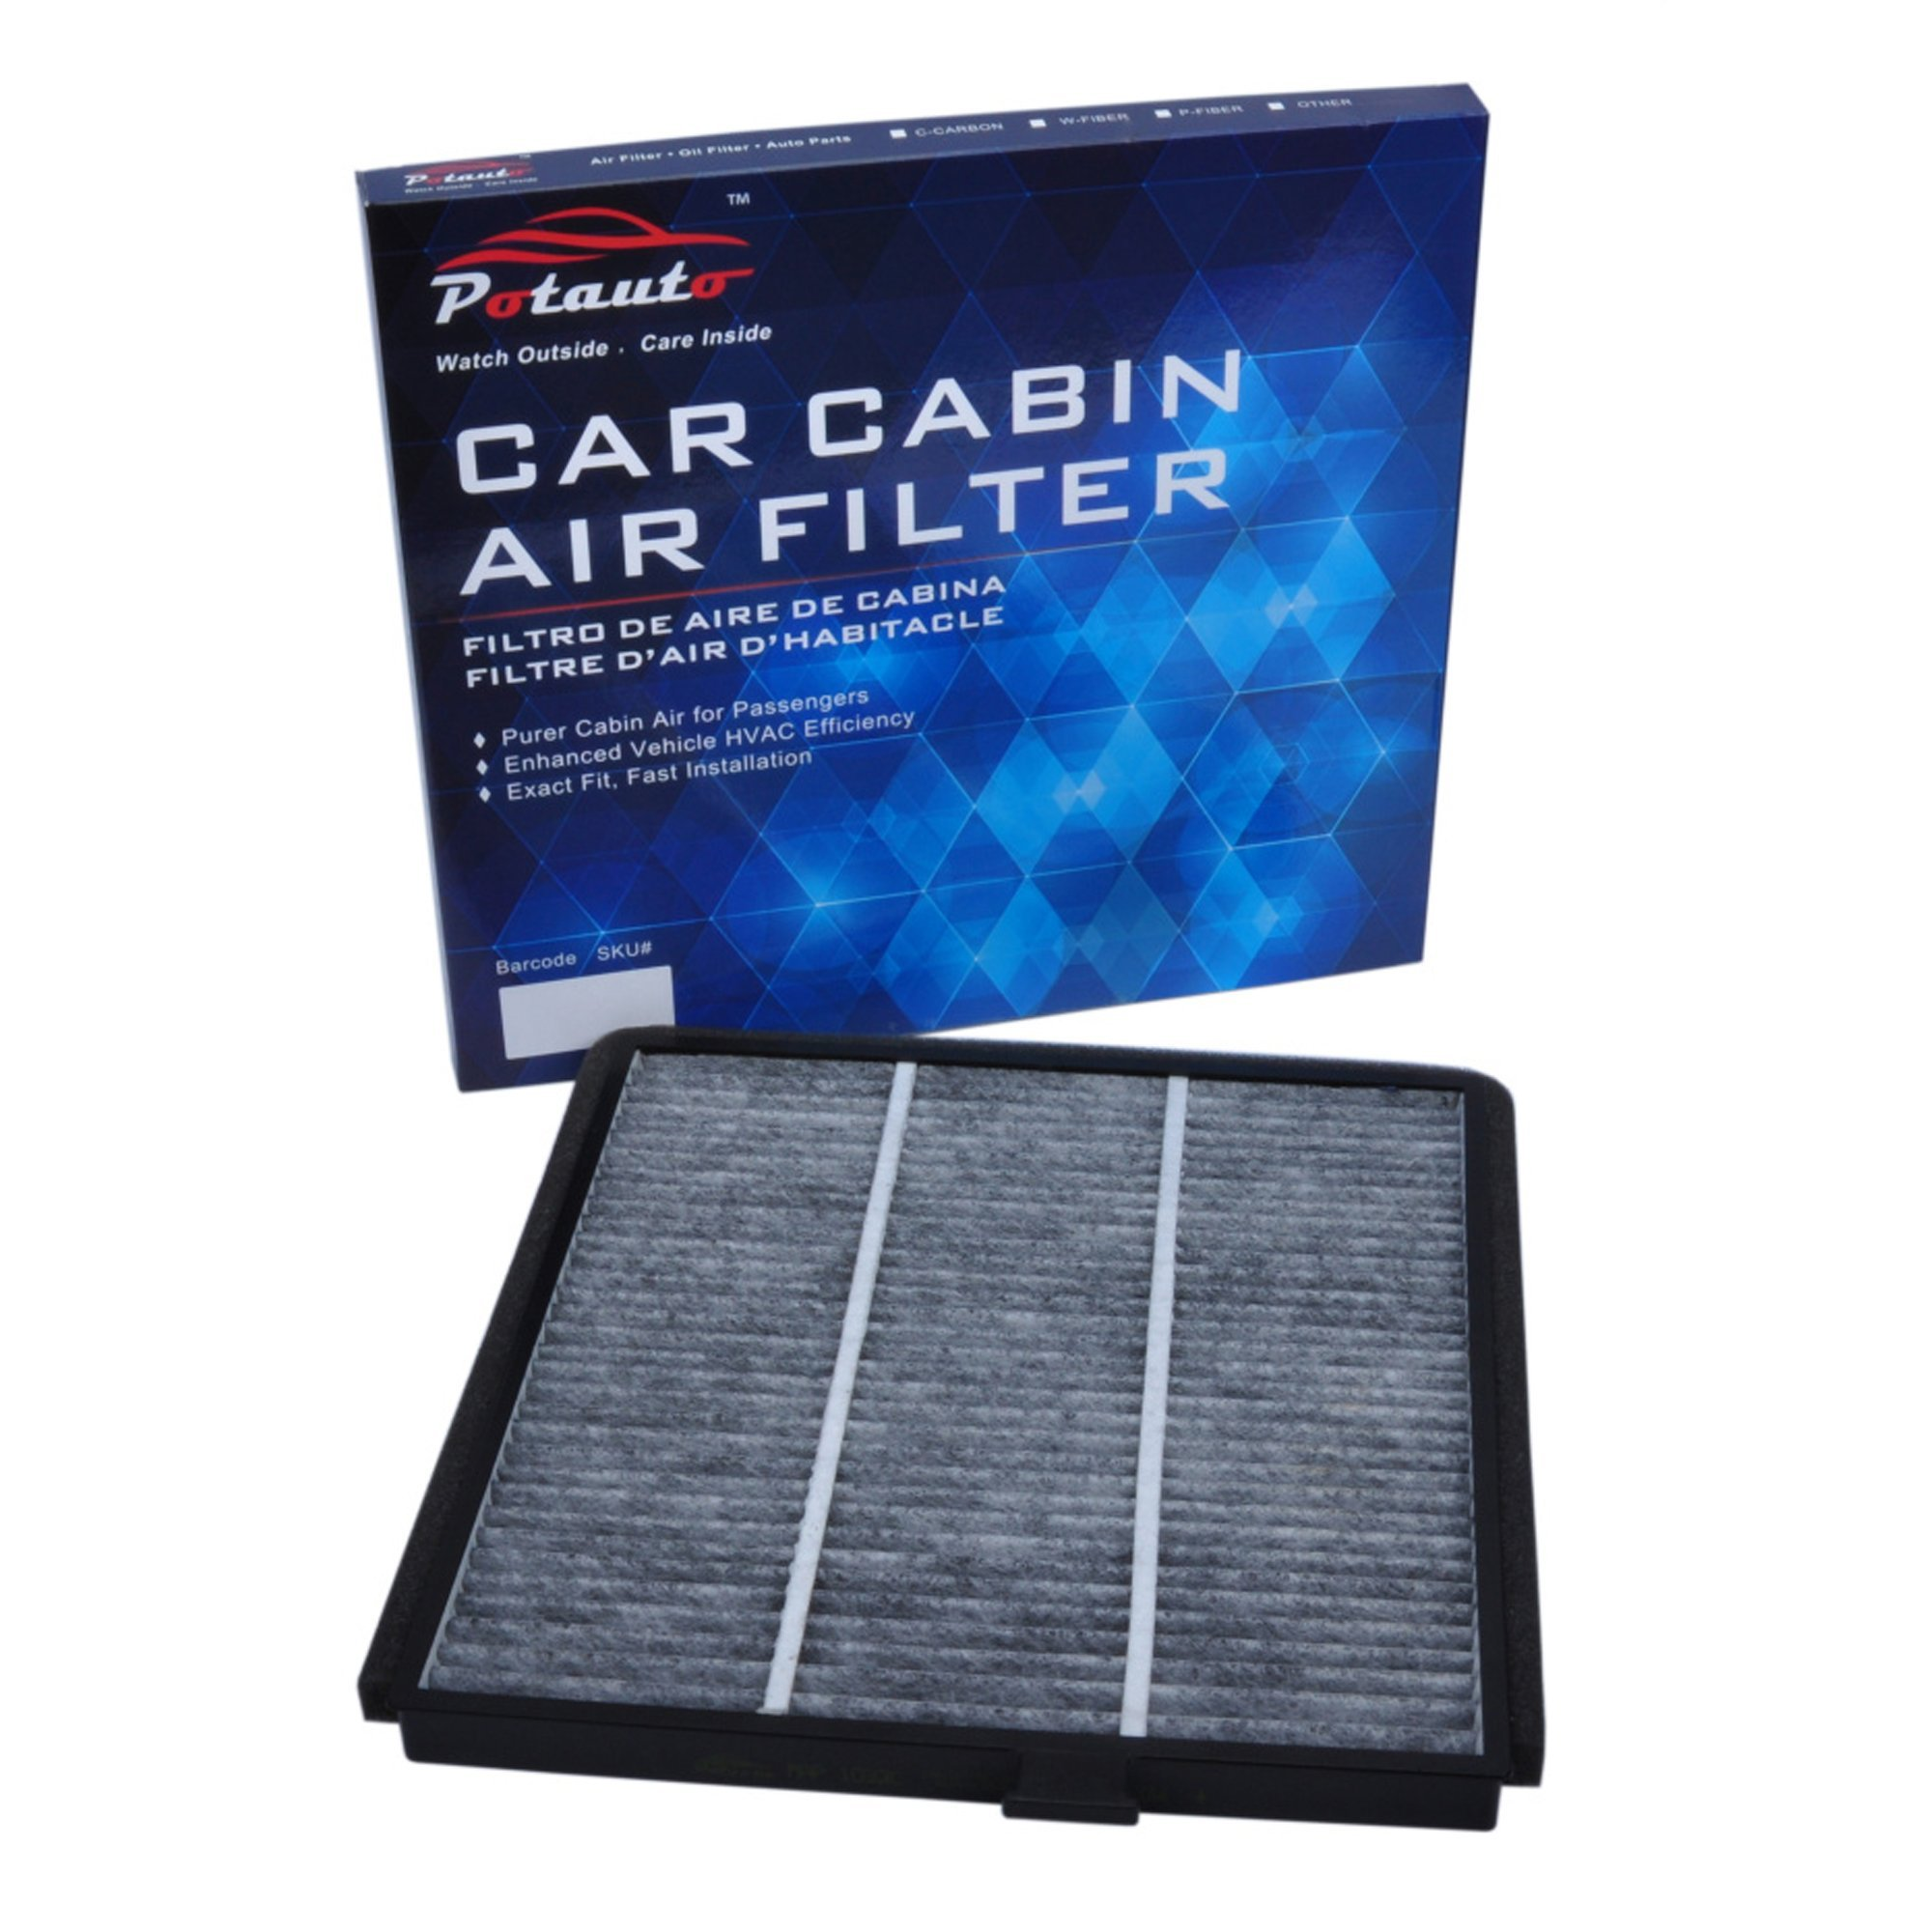 POTAUTO MAP 1032C Heavy Activated Carbon Car Cabin Air Filter Replacement compatible with ACURA, MDX, HONDA, Odyssey, Pilot (Upgraded with Active Carbon)